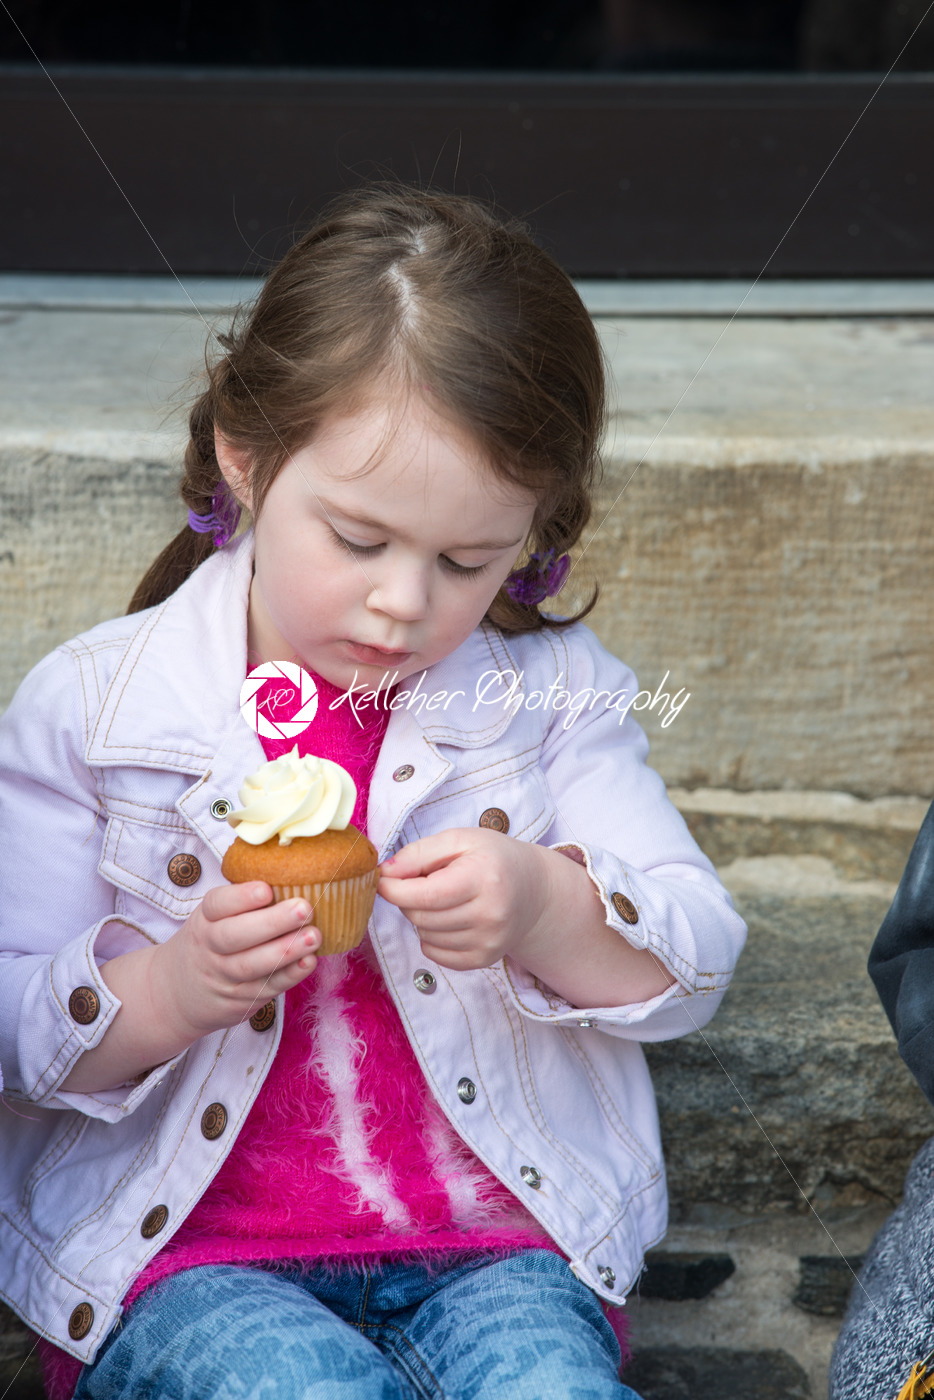 Young girl sitting outside eating a cupcake - Kelleher Photography Store